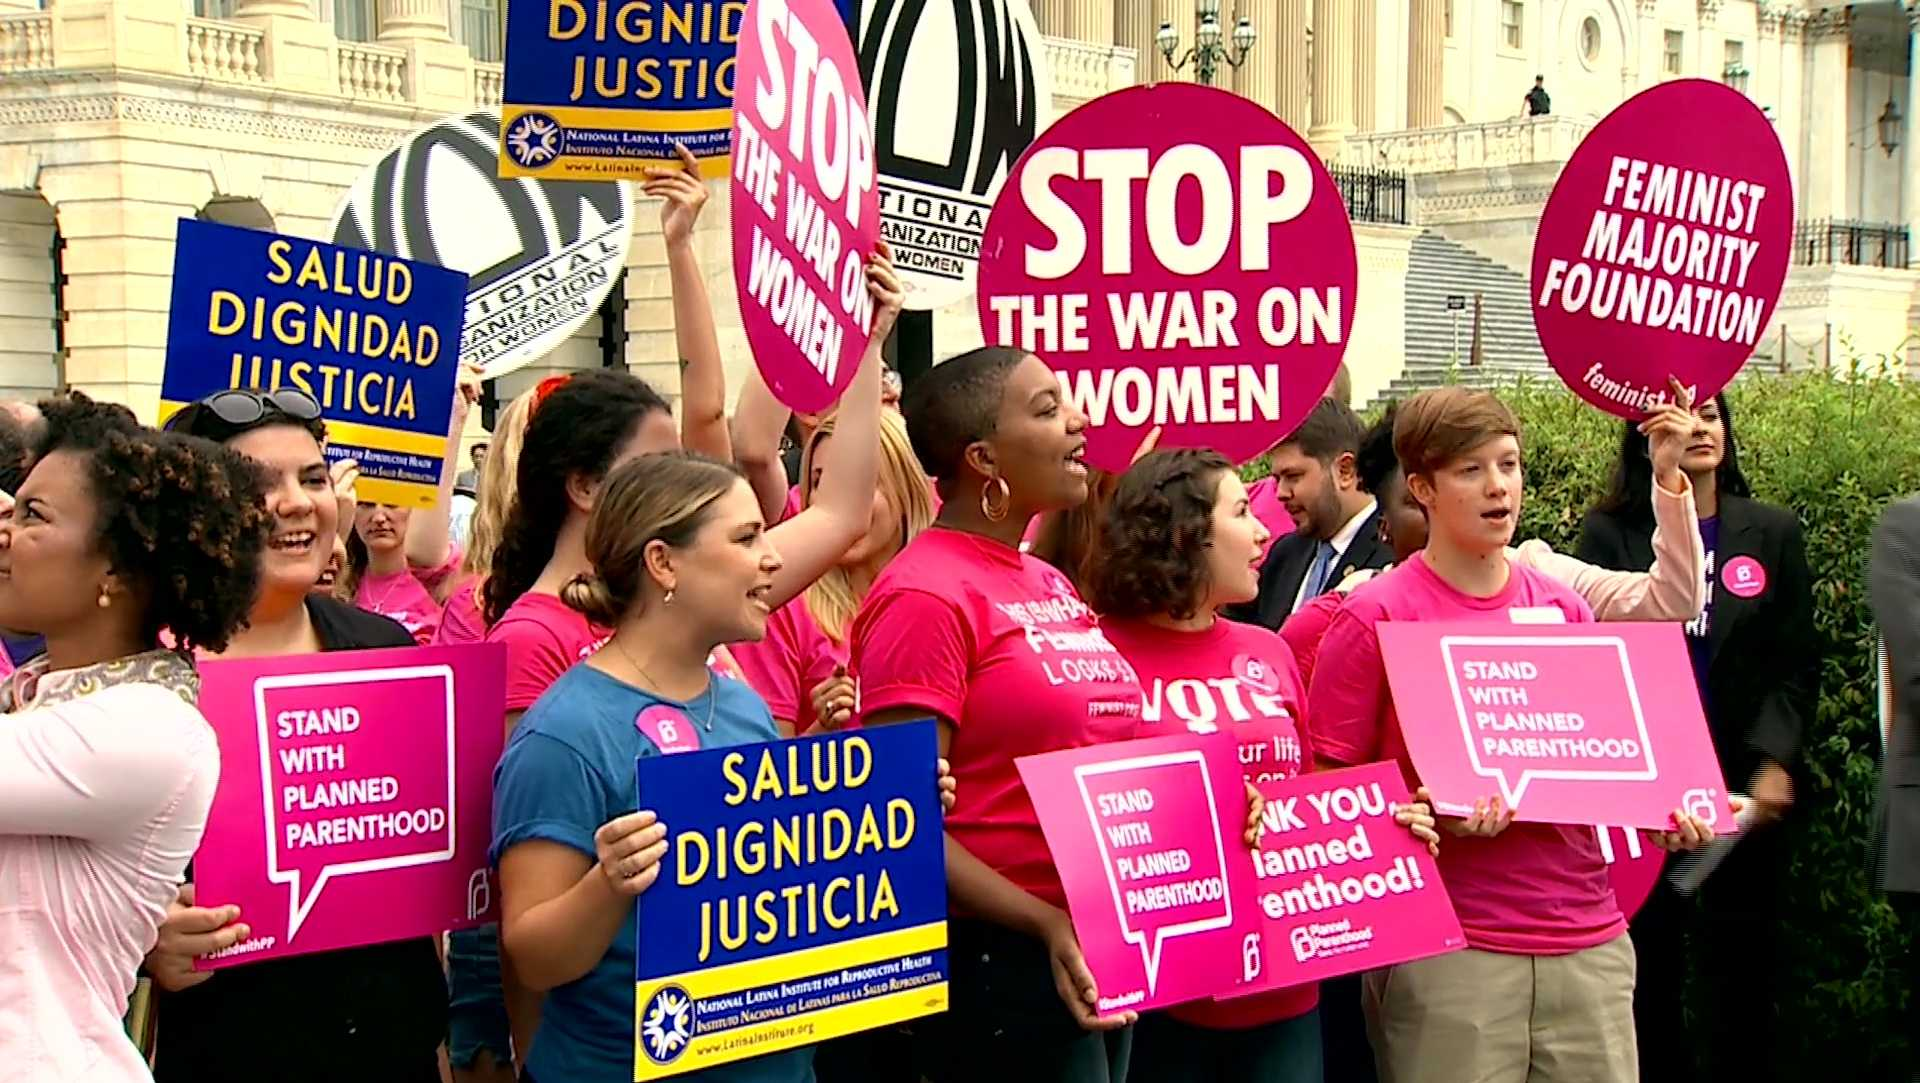 A rally with Planned Parenthood supporters.